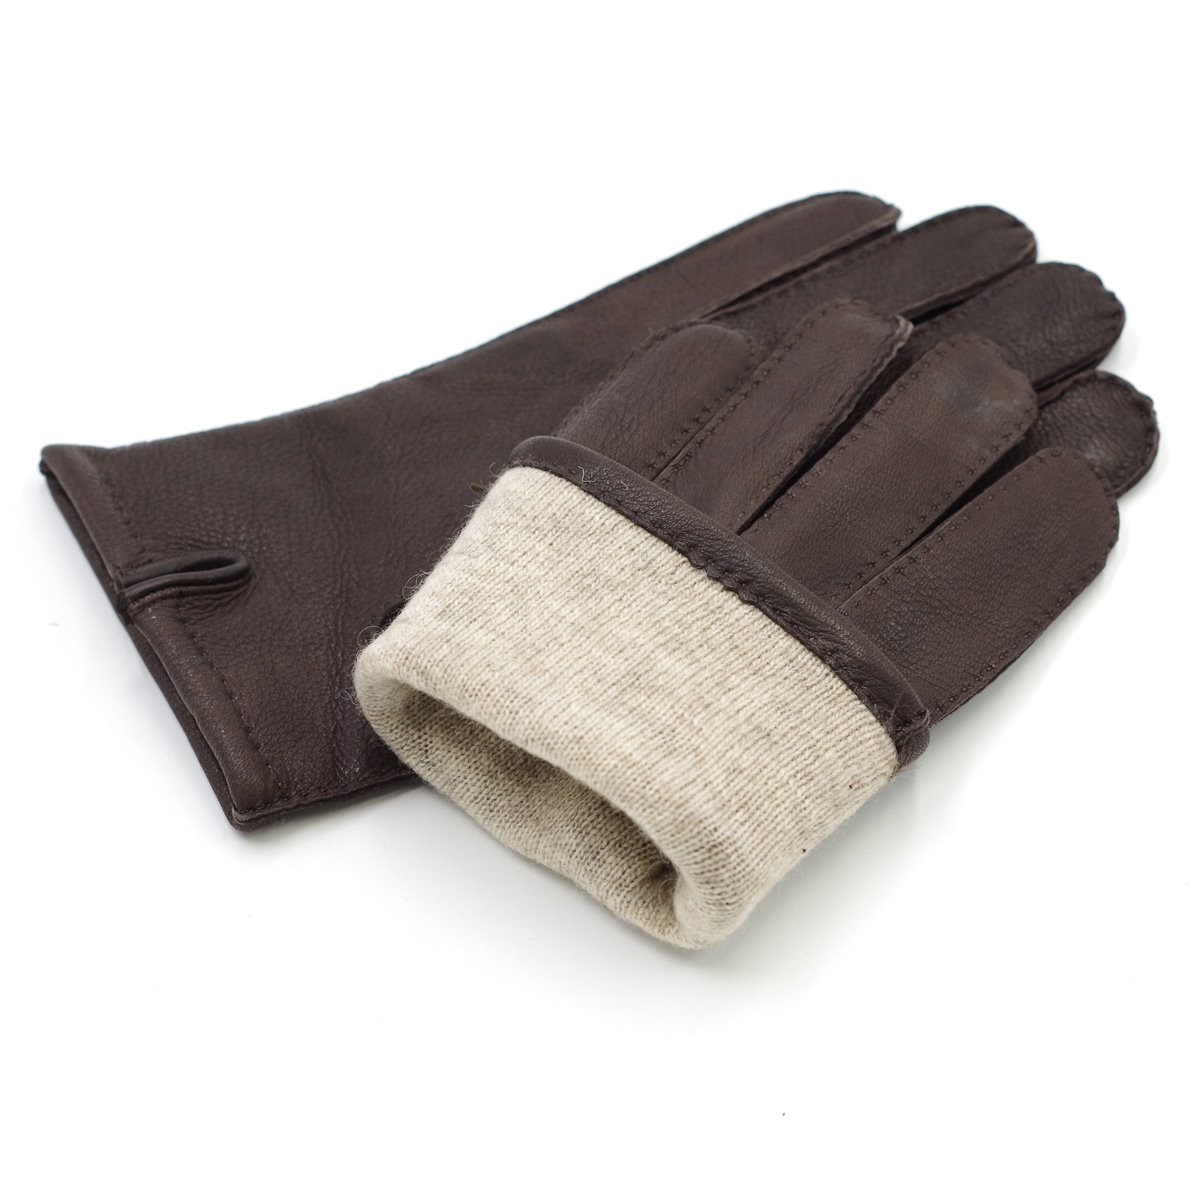 L Brown Harssidanzar Mens Luxury Italian Sheepskin Leather Gloves Vintage Finished Cashmere Lined Upgrade